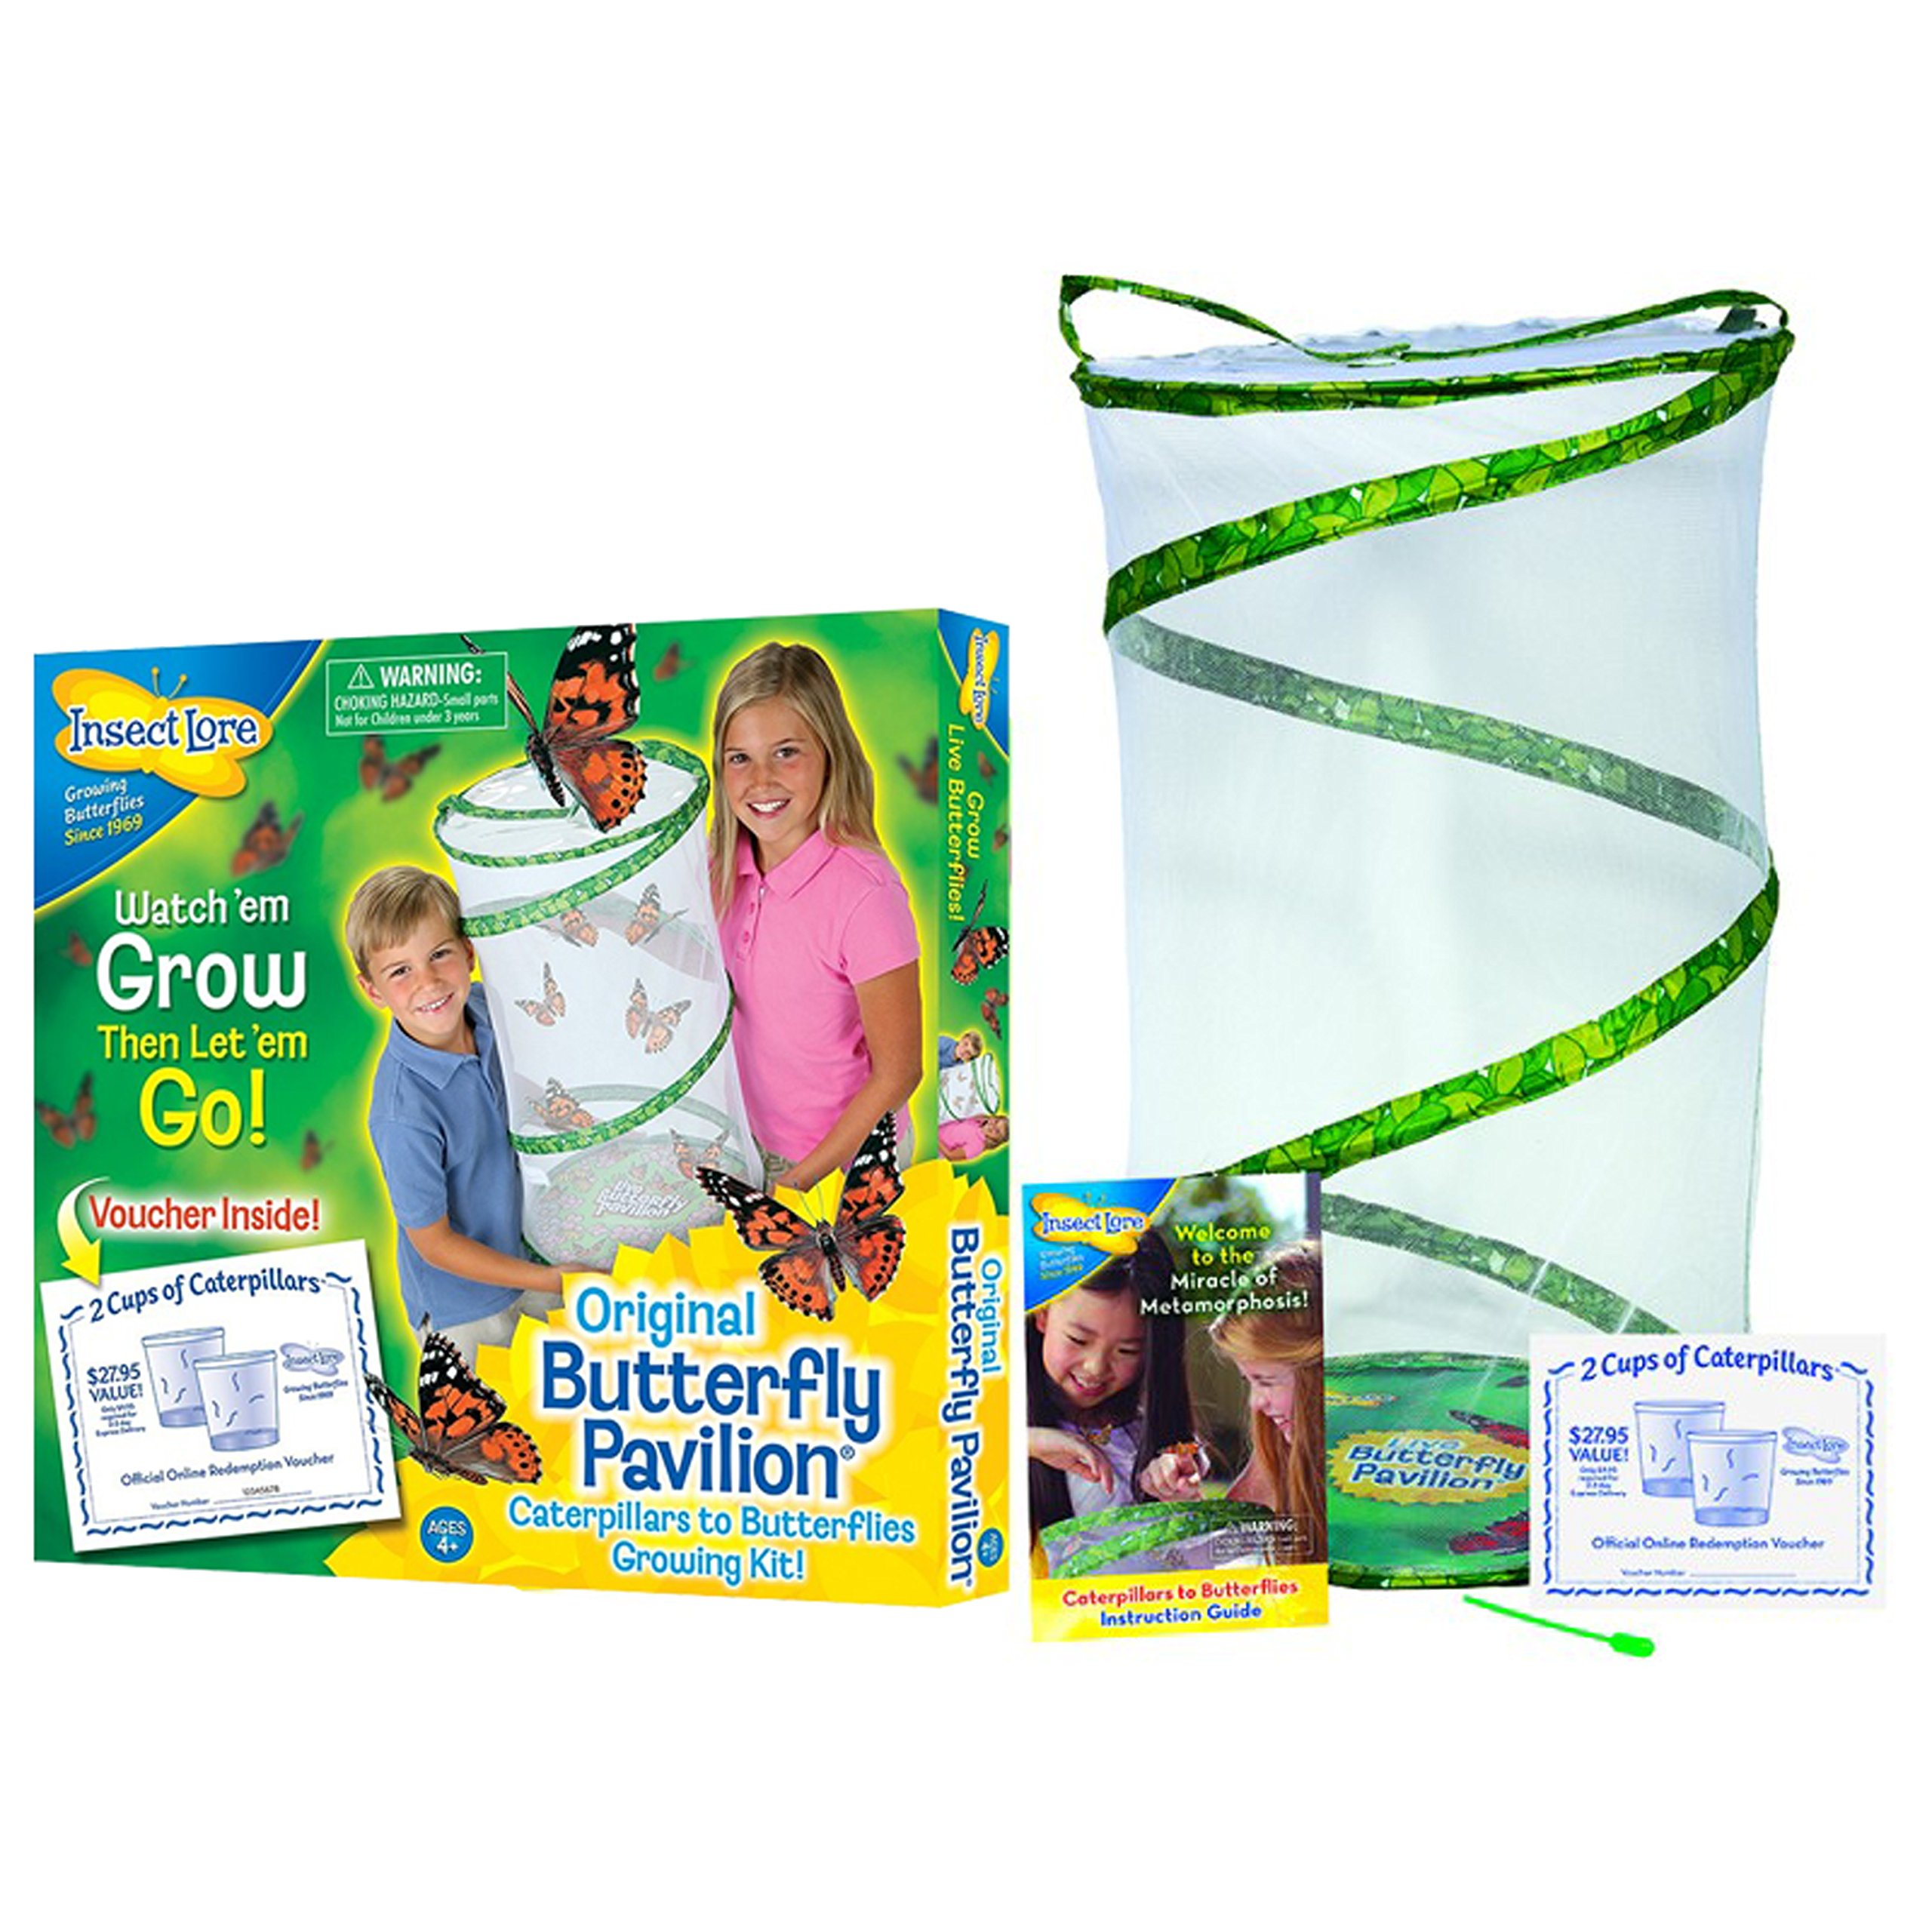 Insect Lore Butterfly Pavilion - Large Habitat Hatching Kit With Voucher For 10 Caterpillars by Insect Lore (Image #1)